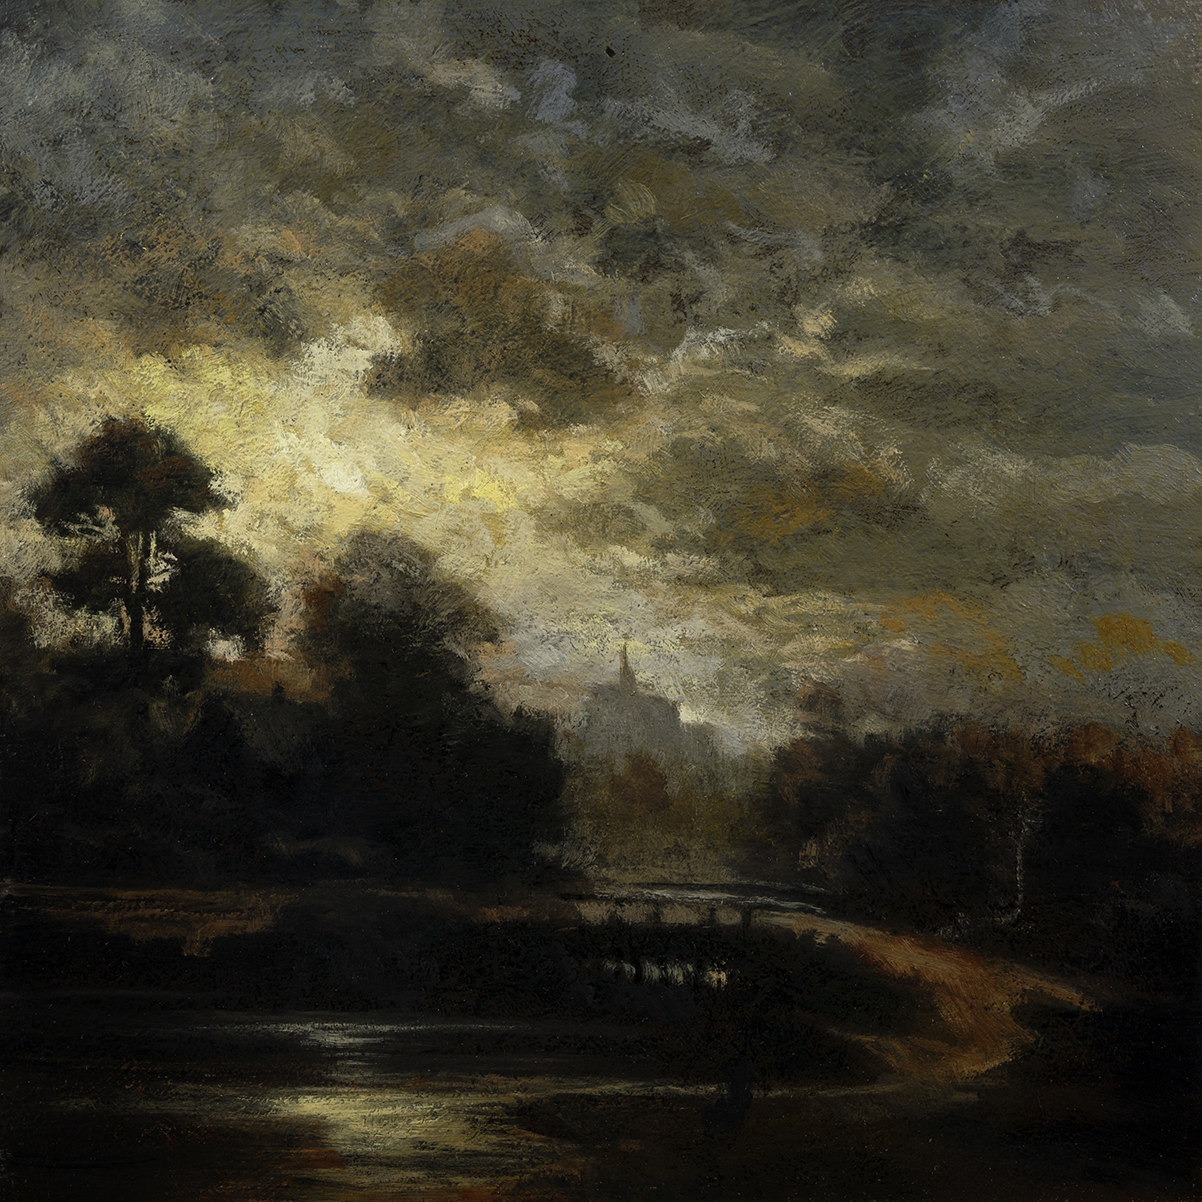 Study after: Jules Dupre' - landscape by Moonlight by M Francis McCarthy - 8x8 Oil on Wood Panel